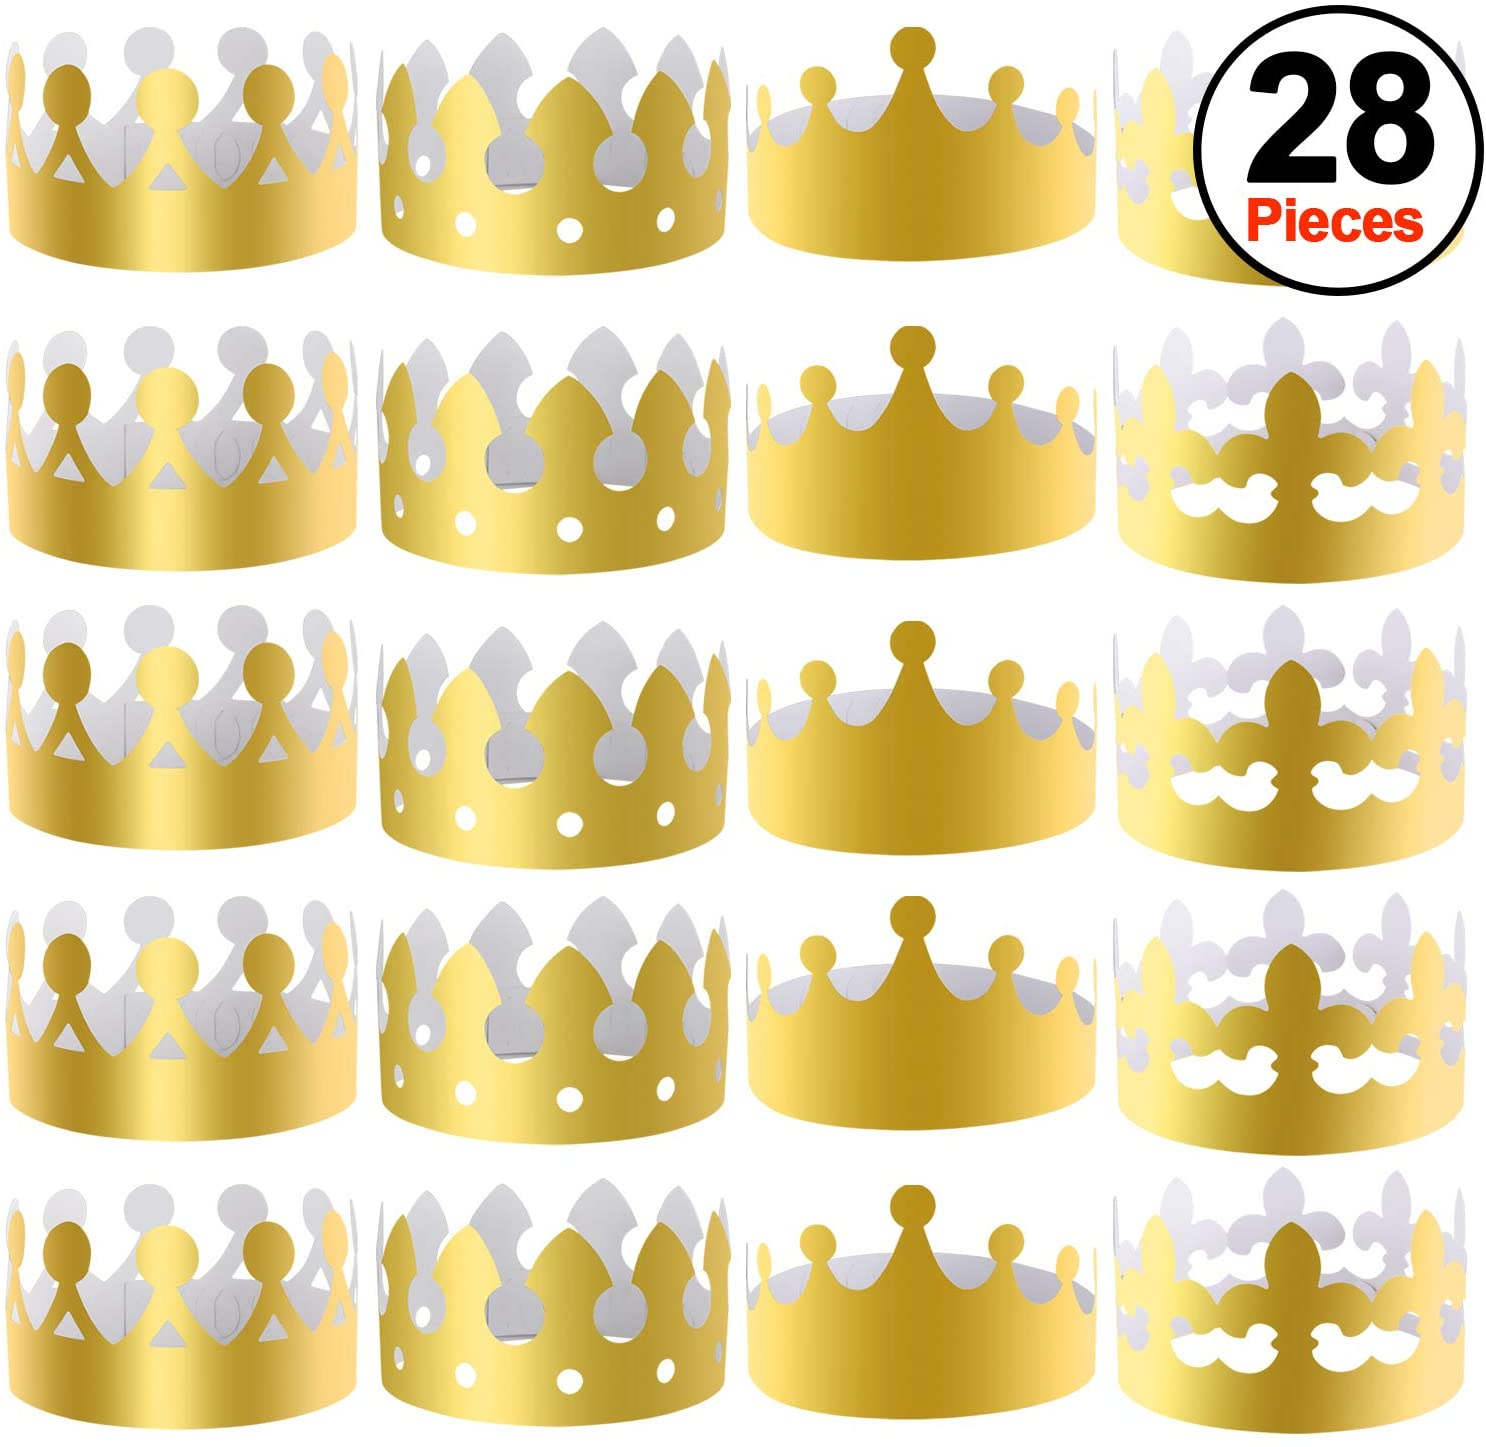 SIQUK 28 Pieces Gold Paper Crowns Party King Crown Paper Hats for Party and Celebration